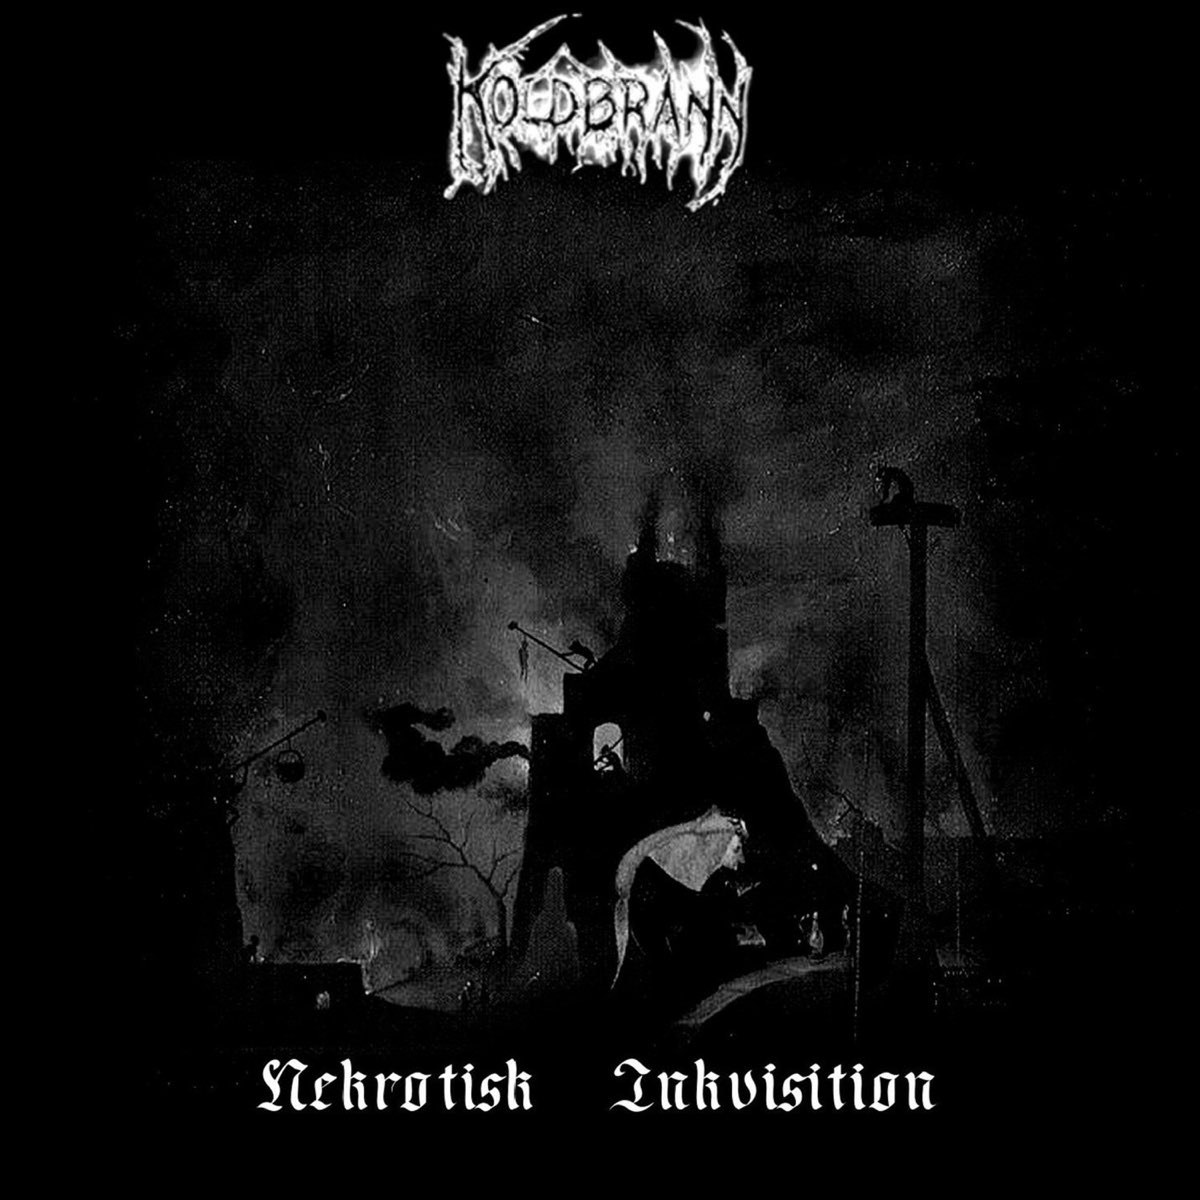 Review for Koldbrann - Nekrotisk Inkvisition